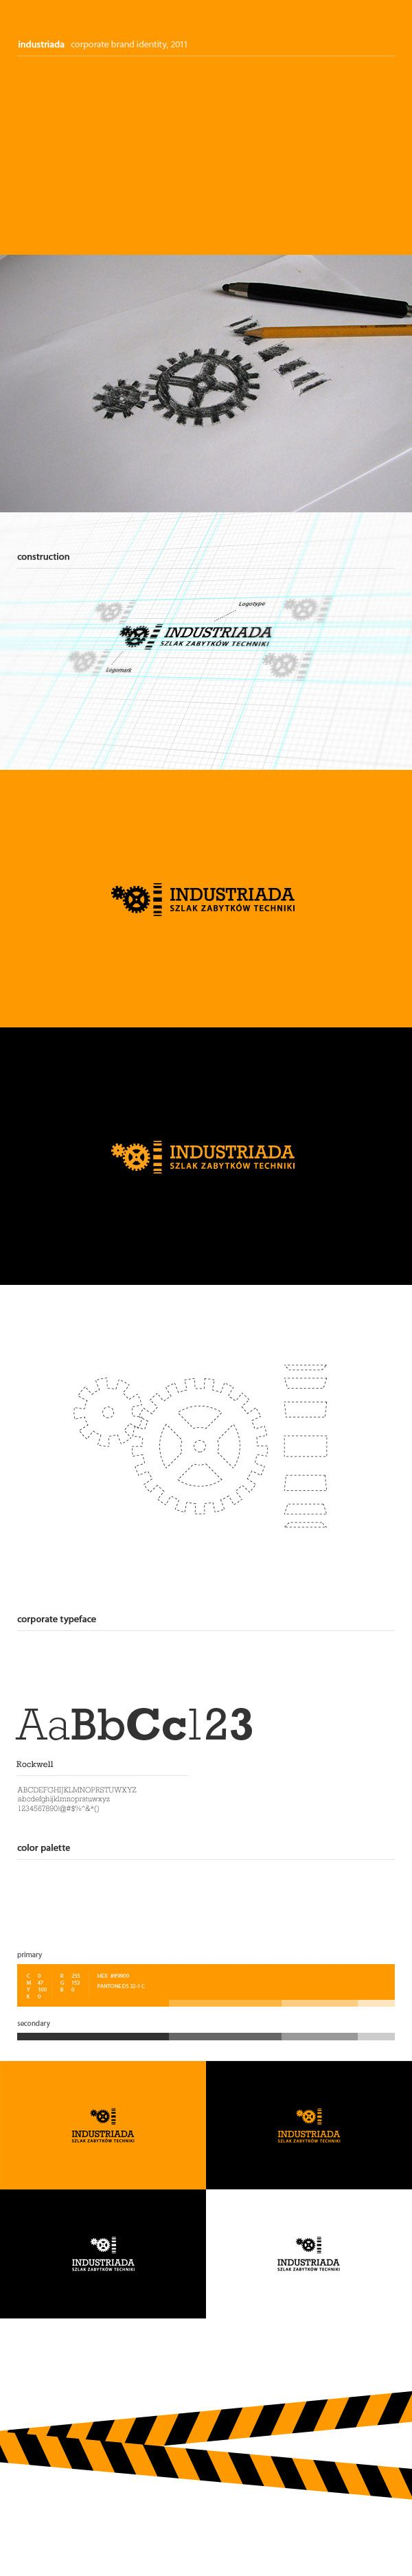 Logo design for Industriada